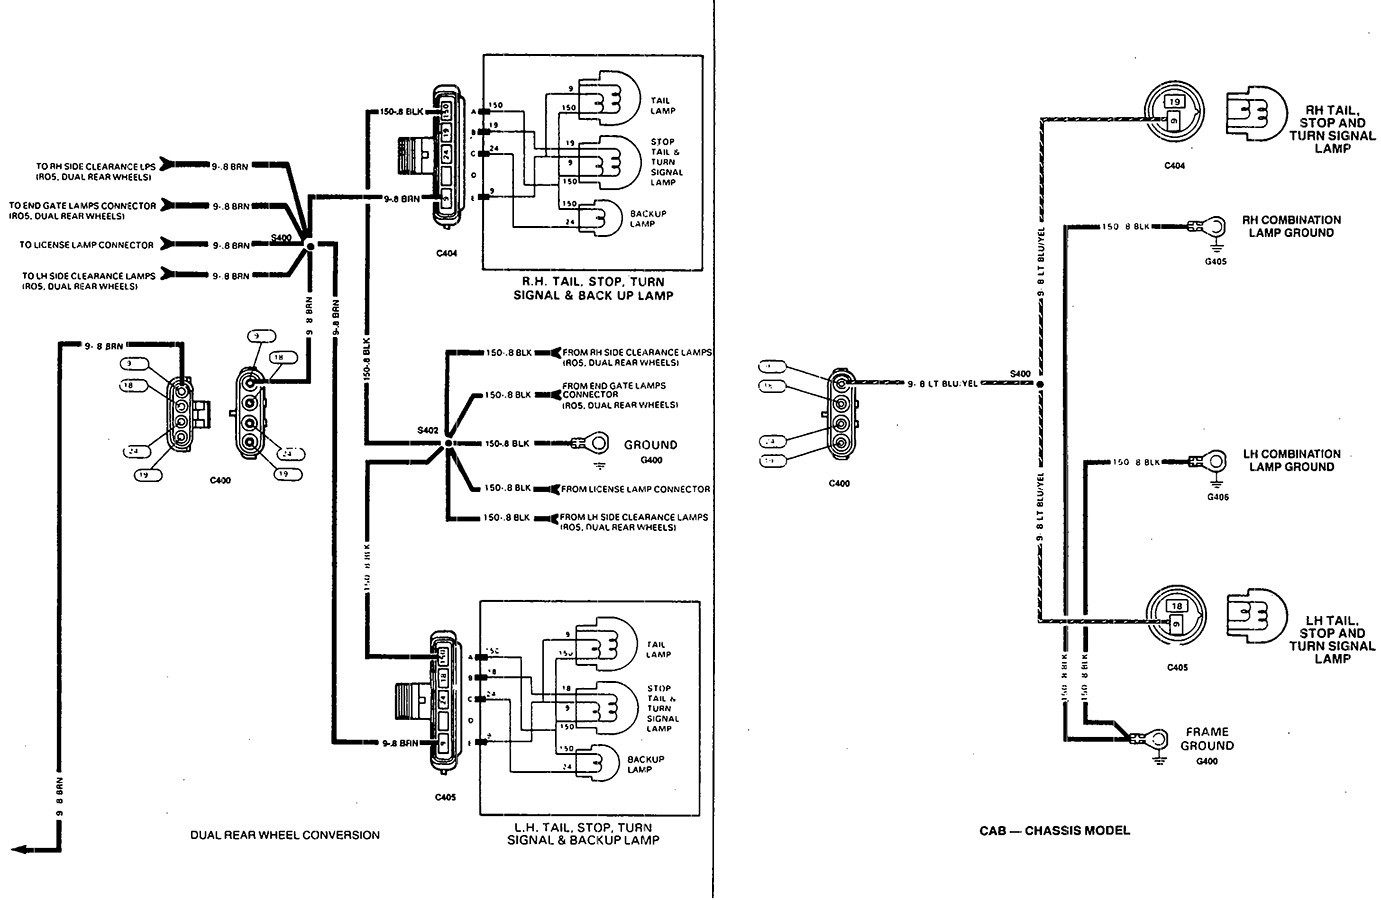 hight resolution of wiring diagrams 2005 chevy astro van electricity site chevy astro engine diagram 1998 chevy astro van